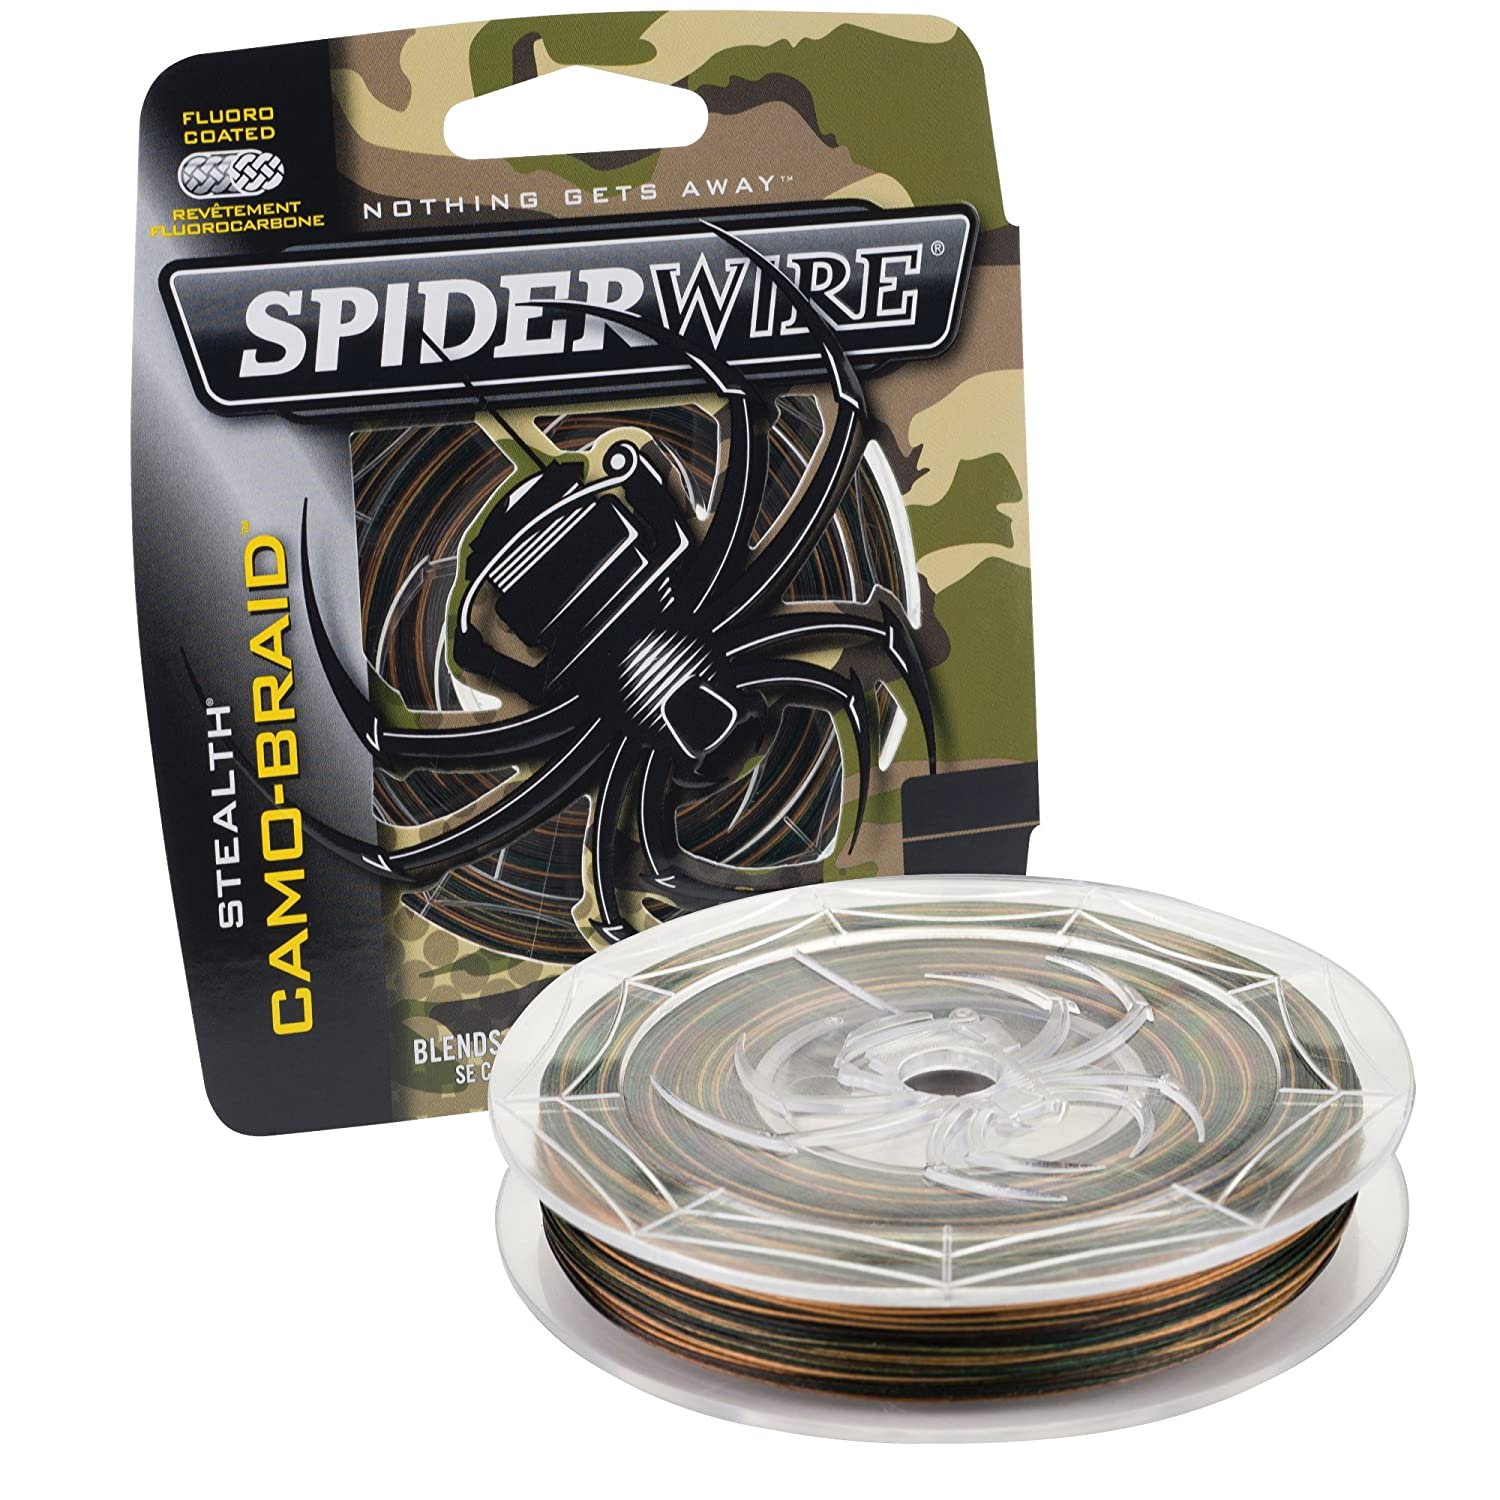 Spiderwire Braided Stealth Superline - Color Carmo.